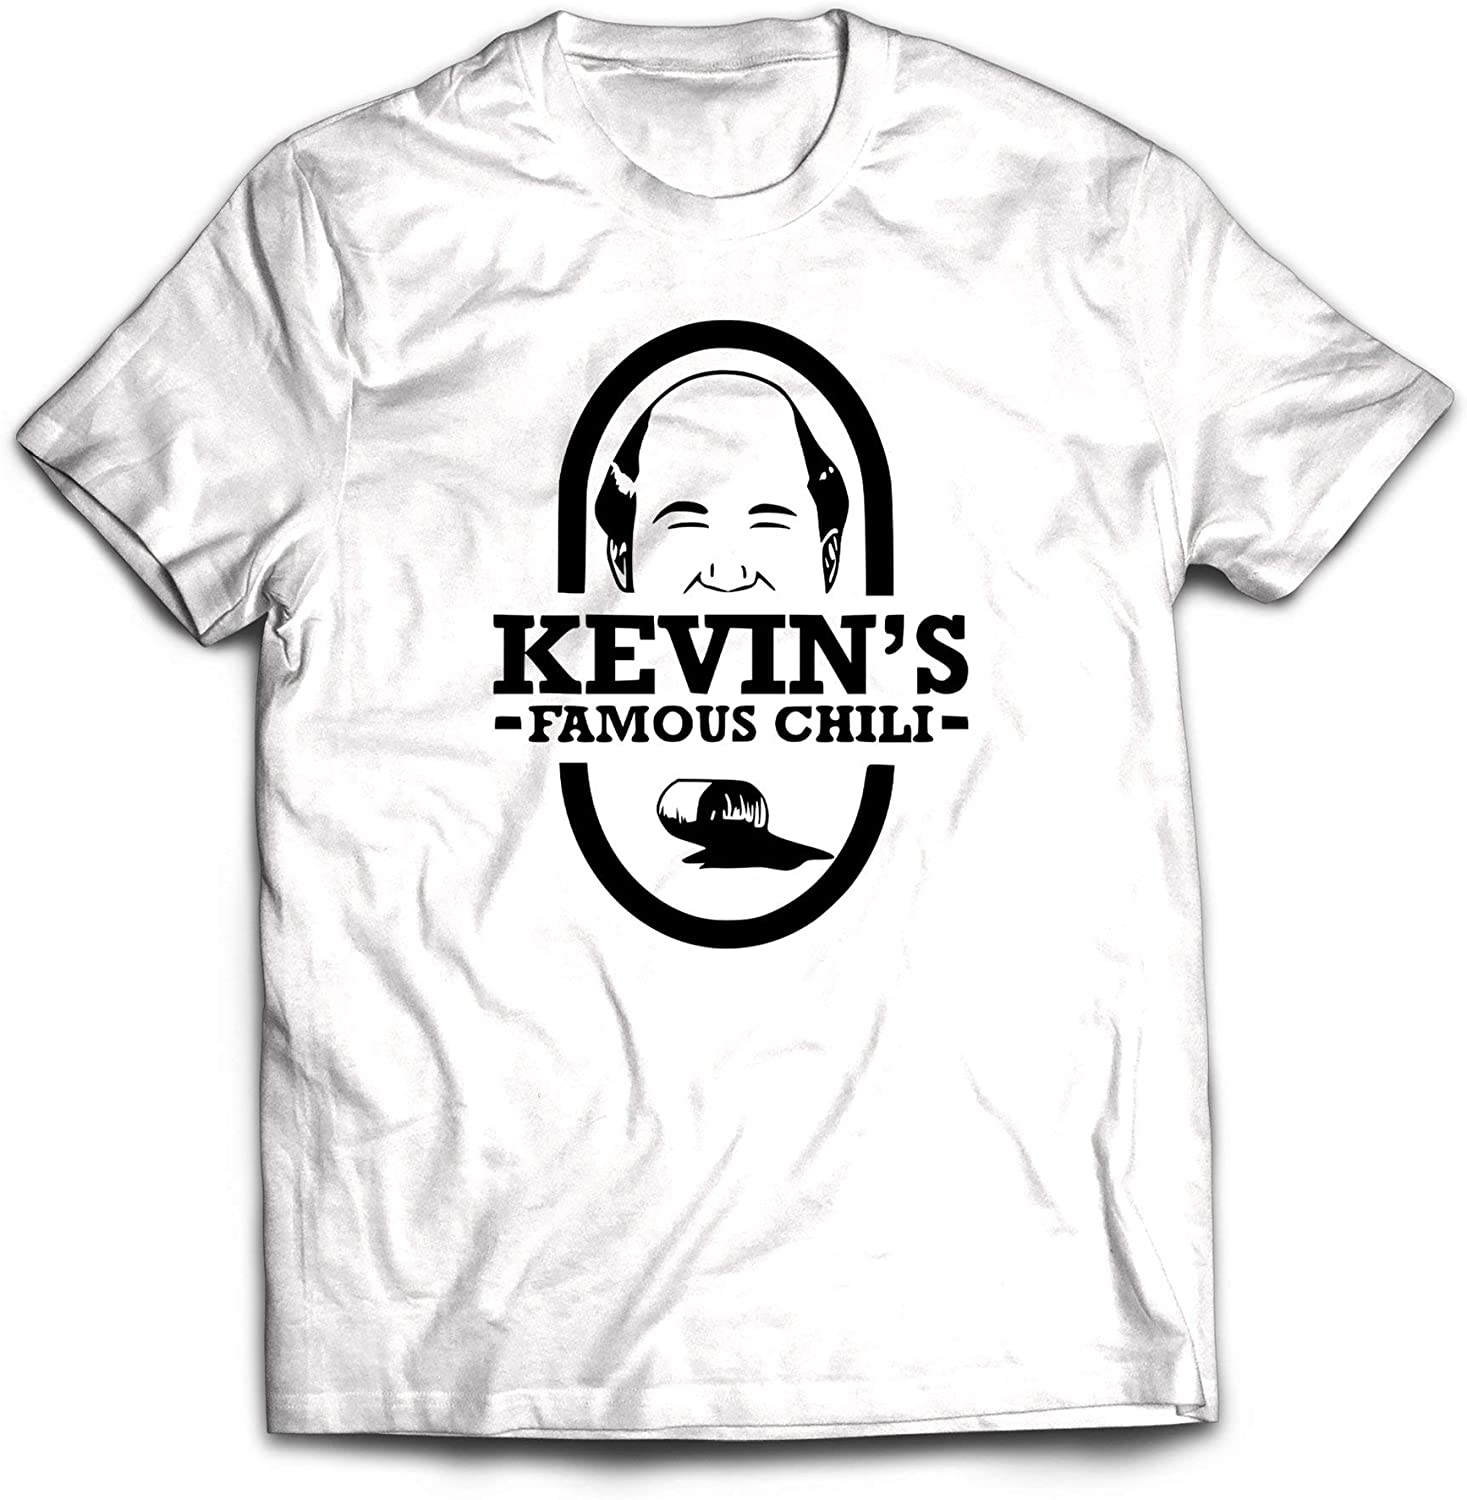 Kevin's Famous Chili T Shirt, The Office T Shirt, Dunder Mifflin Shirt, Kevin Malone Shirt